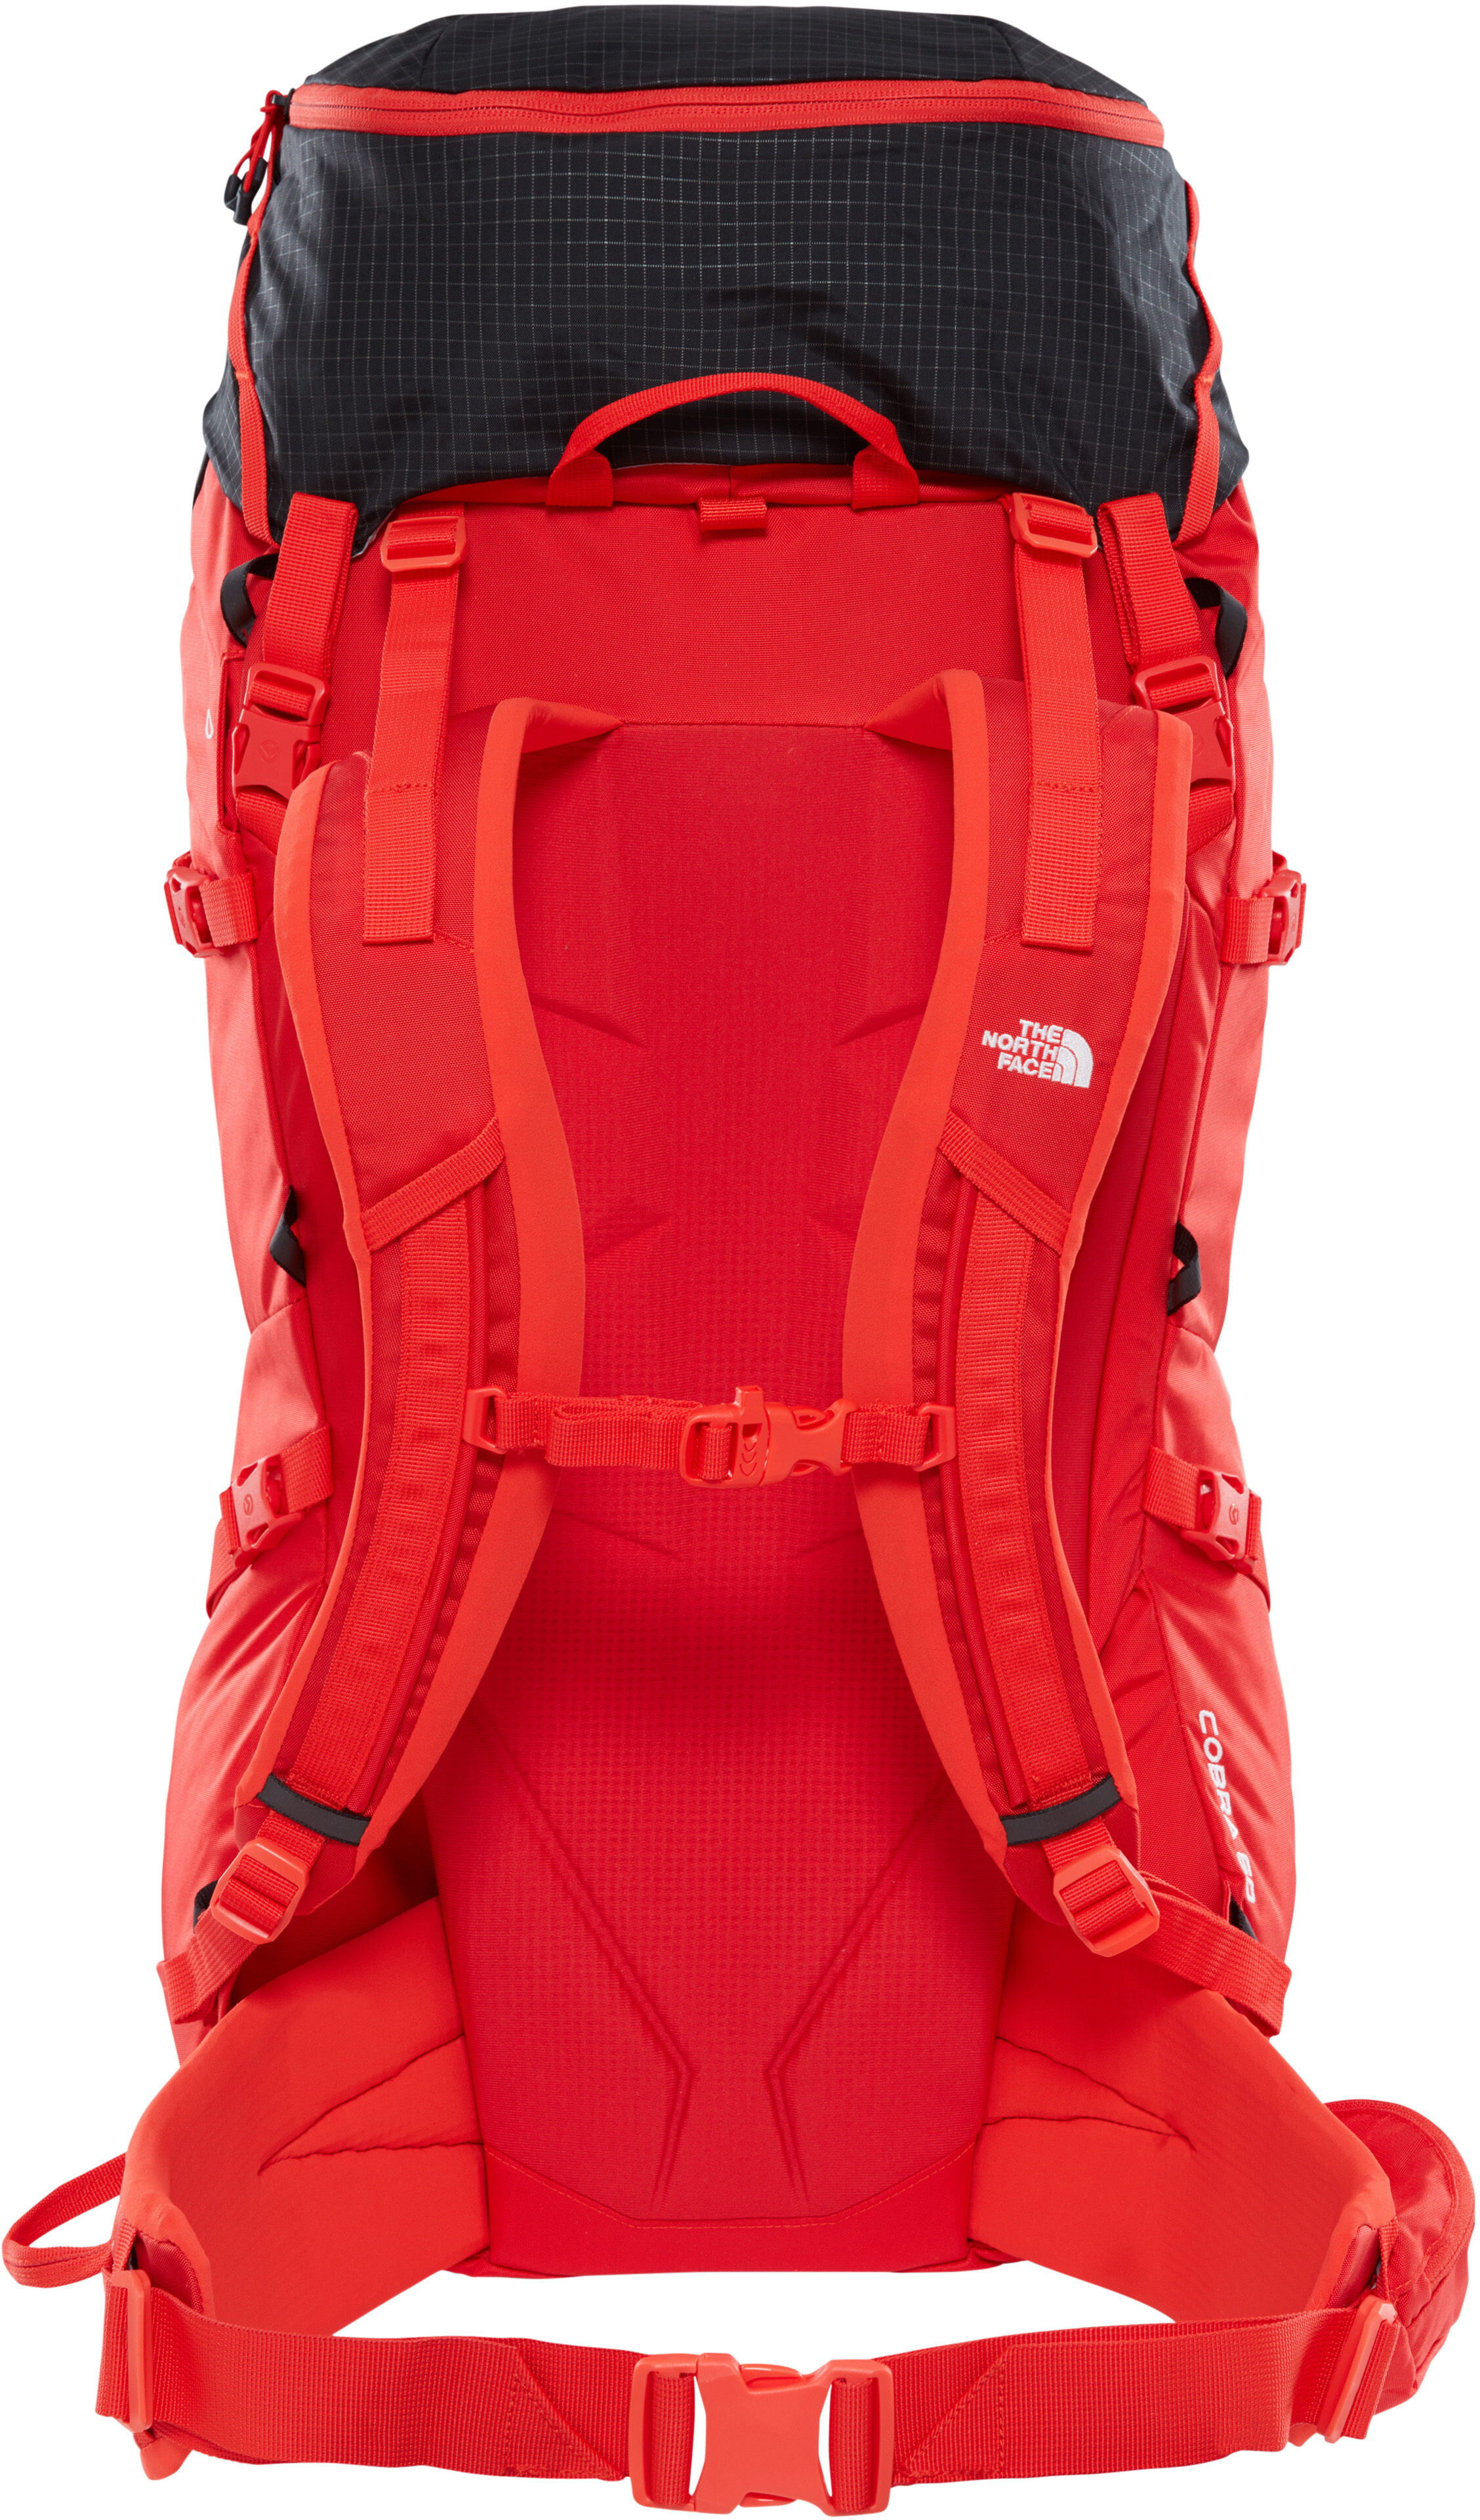 338bb47dd The North Face Cobra 60 Backpack fiery red/tnf black